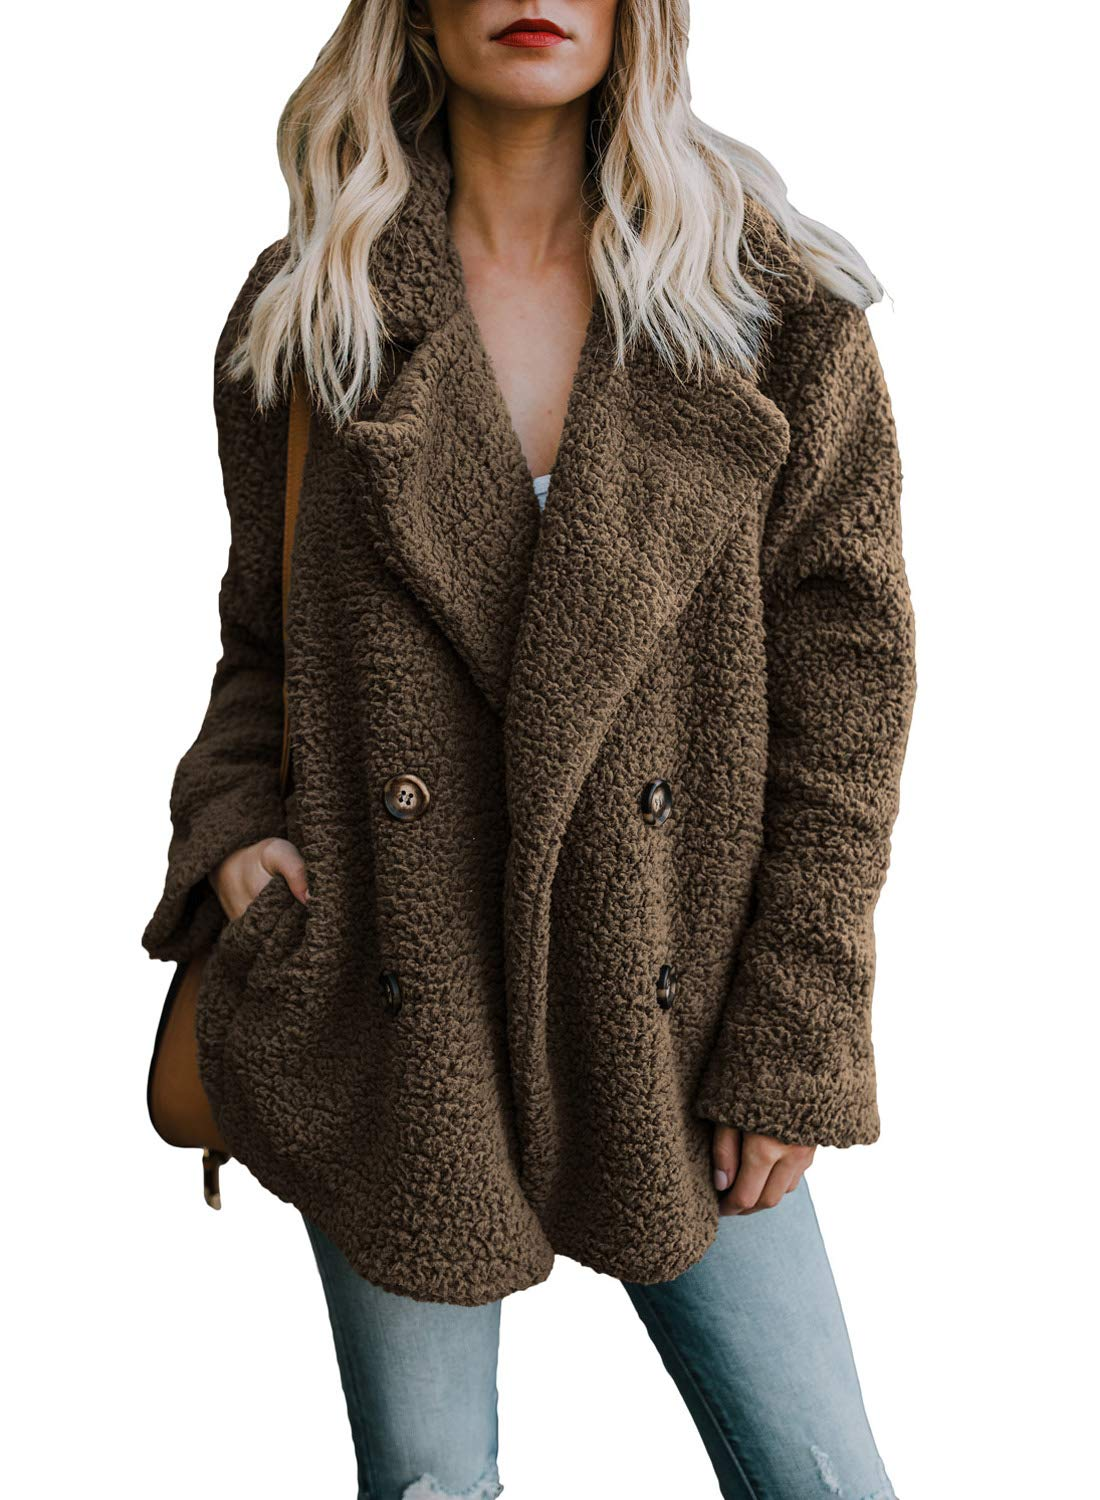 HOTAPEI Womens Plus Size Warm Casual Oversized Long Sleeve Open Front Fuzzy Coats with Pockets Fluffy Cardigan Sweater Jacket Coat Outwear Coffee X-Large